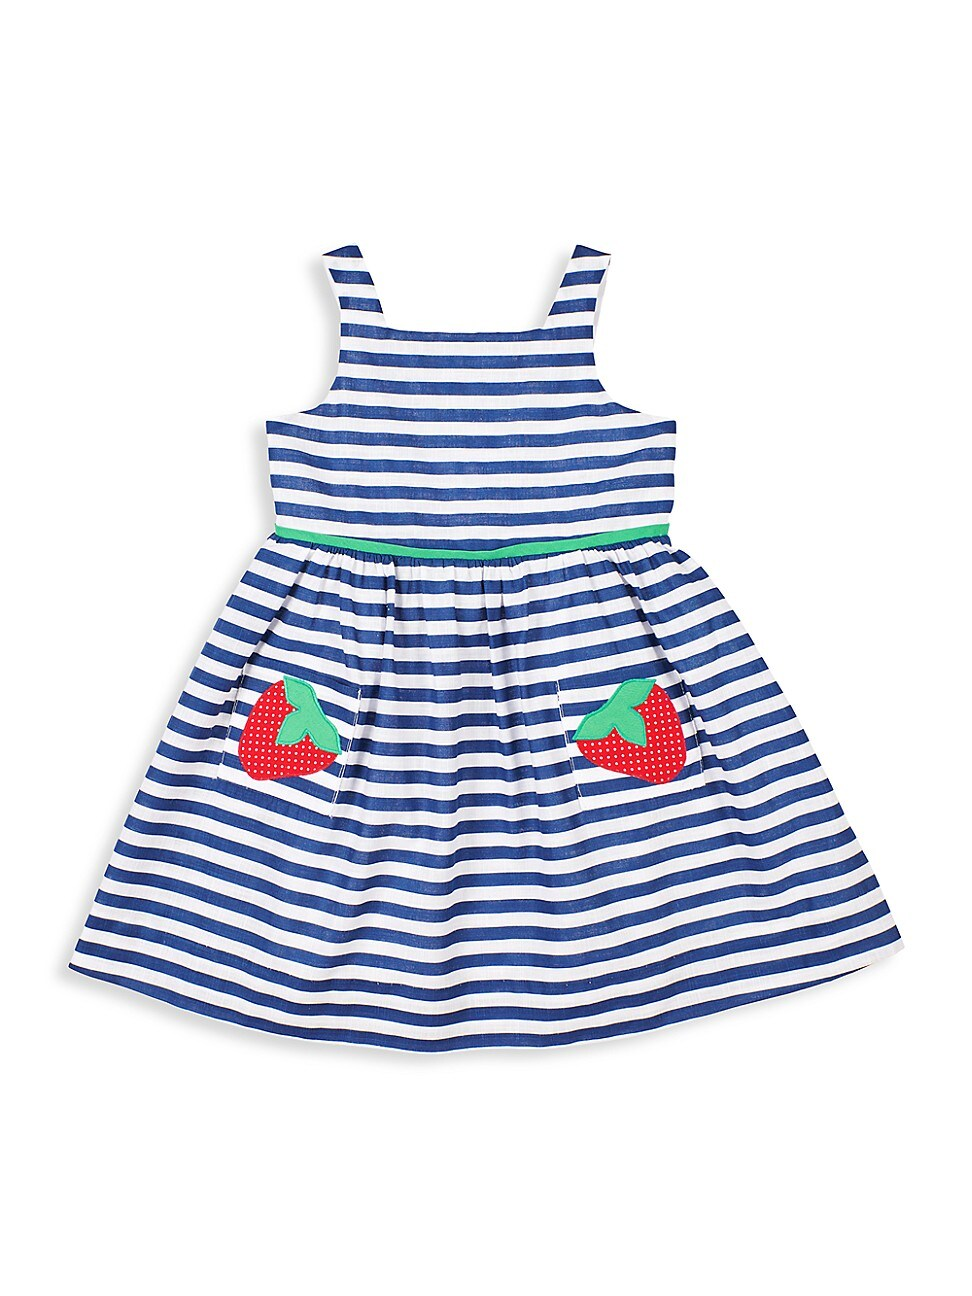 Florence Eiseman BABY'S & LITTLE GIRL'S BERRY CUTE STRIPED DRESS